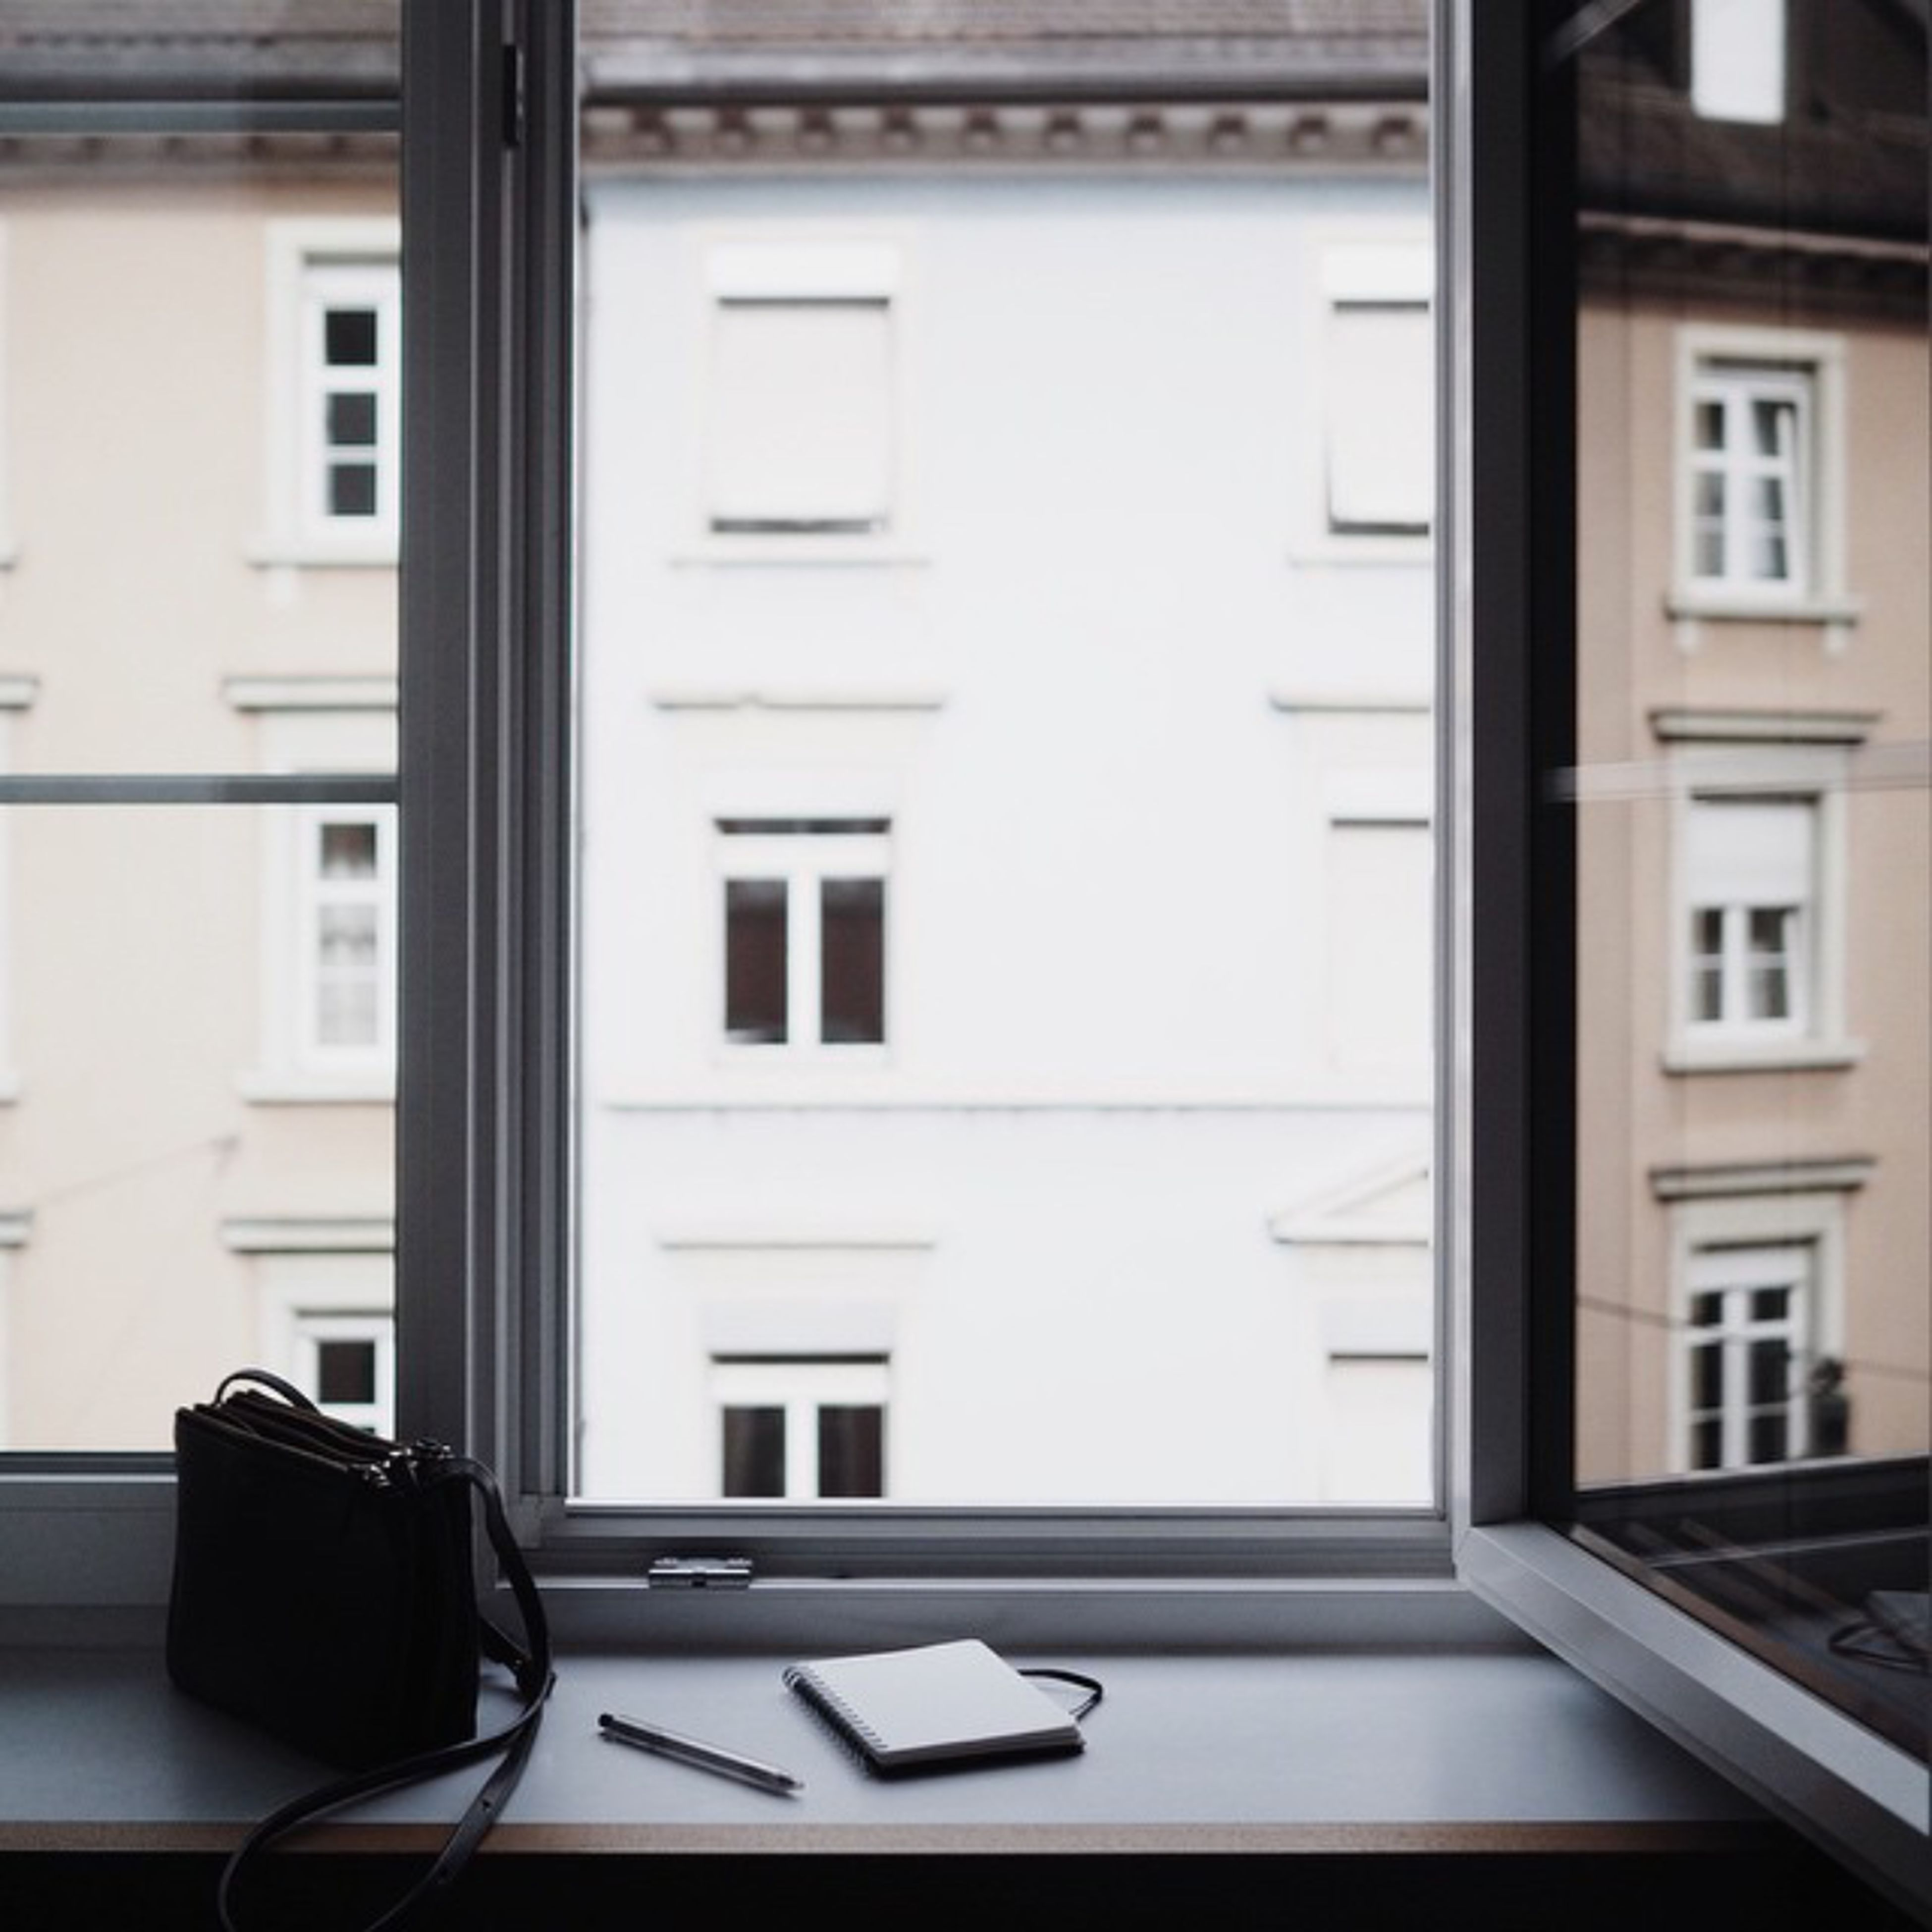 window, architecture, indoors, built structure, building exterior, residential building, chair, house, residential structure, balcony, absence, empty, no people, day, table, book, home interior, door, building, apartment